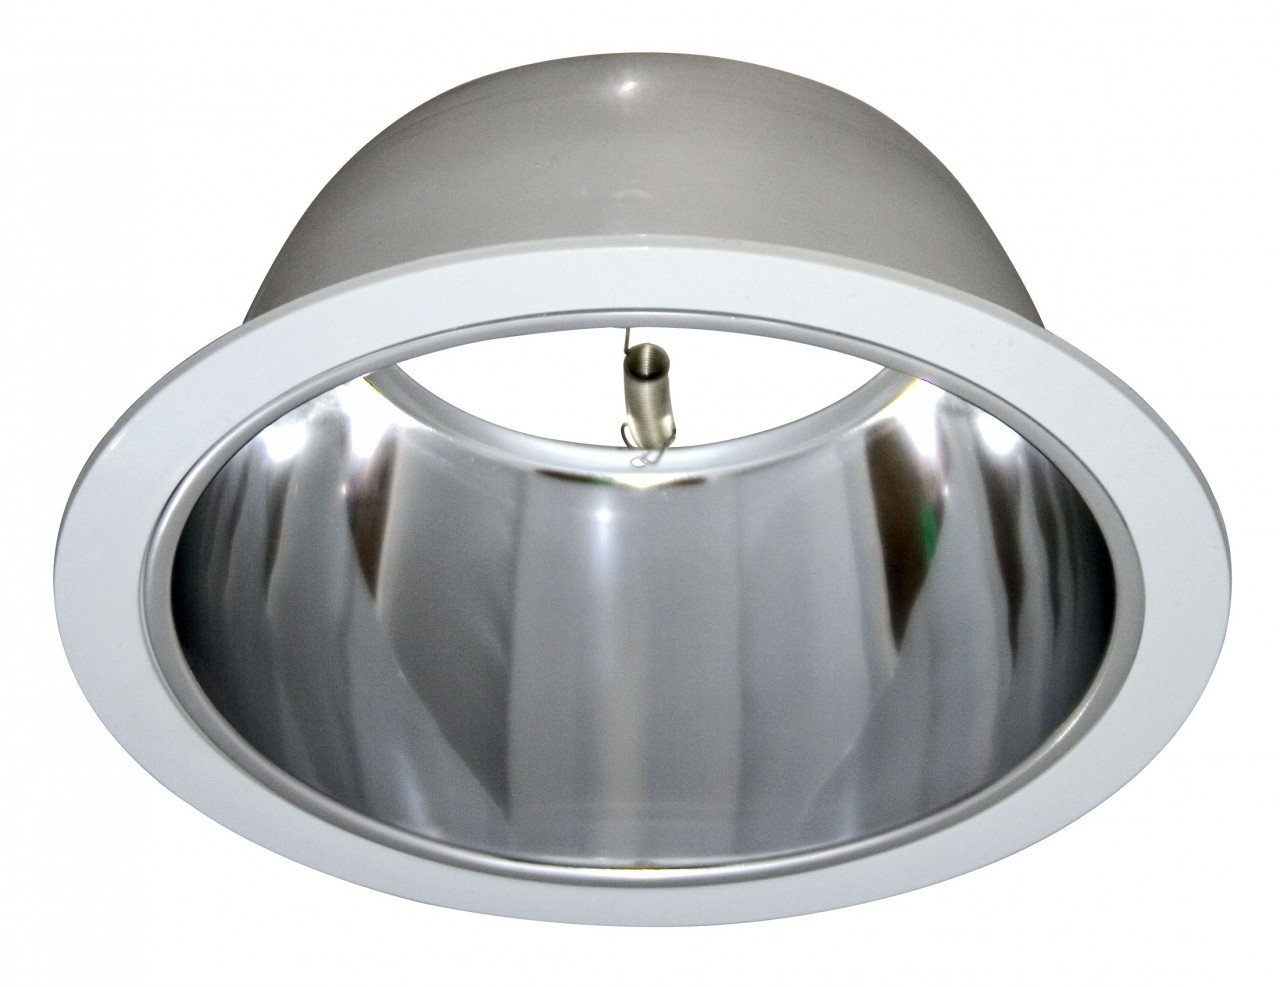 Polished alzak reflector chrome for 6 recessed can recessed polished alzak reflector chrome for 6 recessed can recessed light fixture trims amazon arubaitofo Image collections